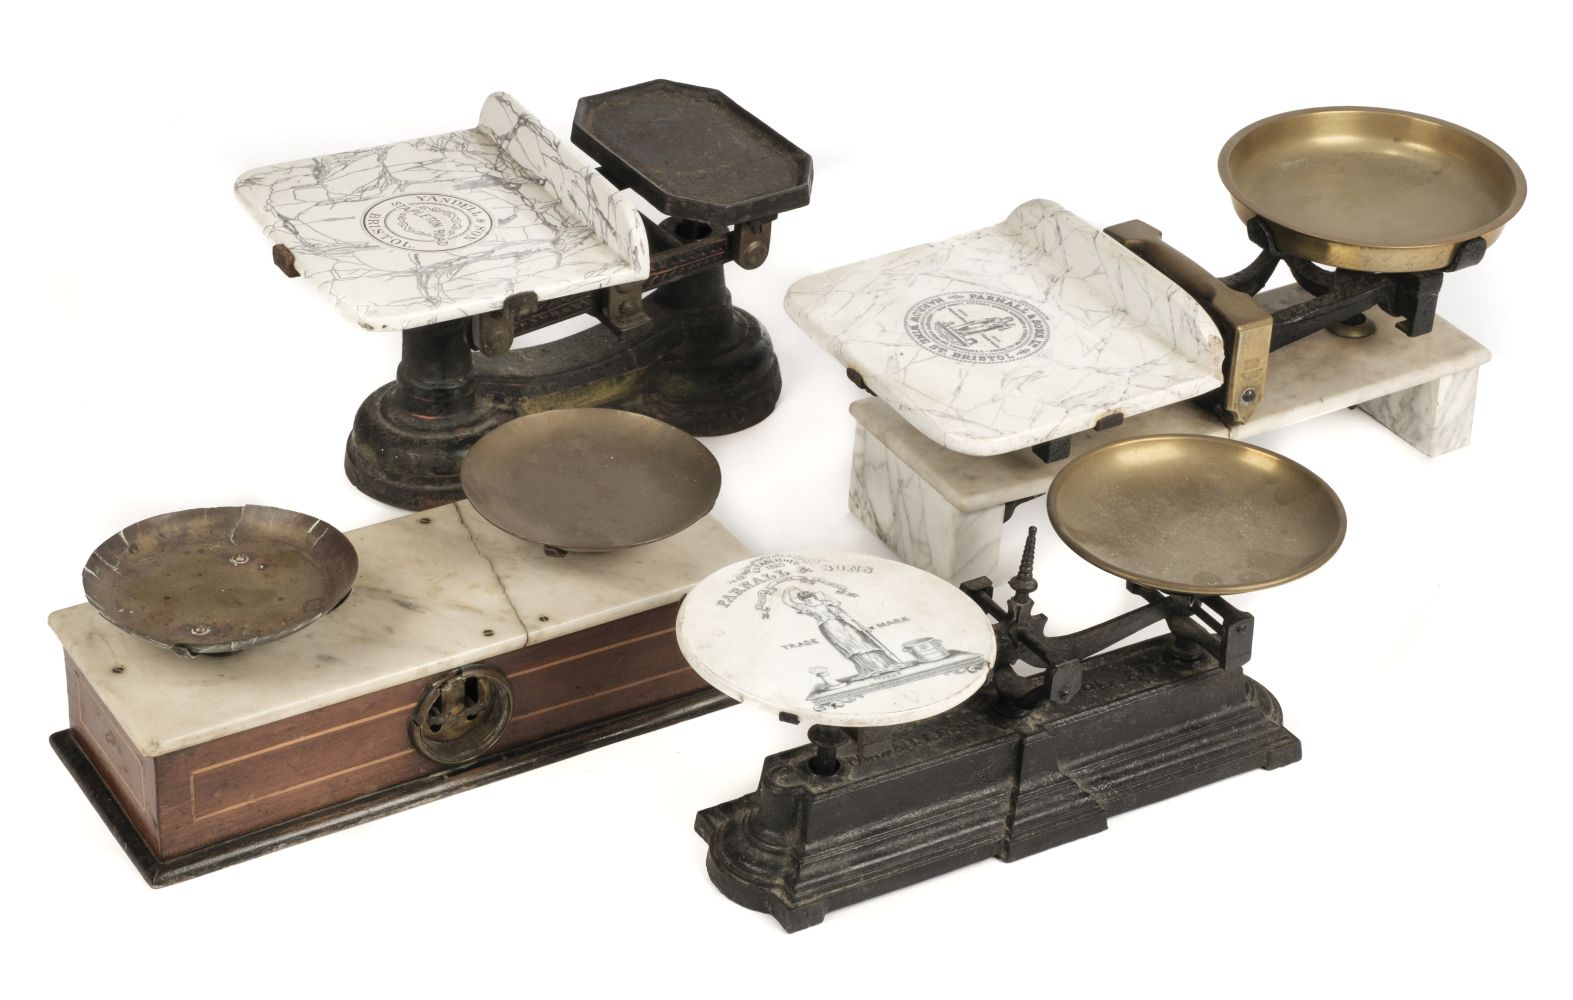 * Scales. Yandell and Parnall & Sons scales